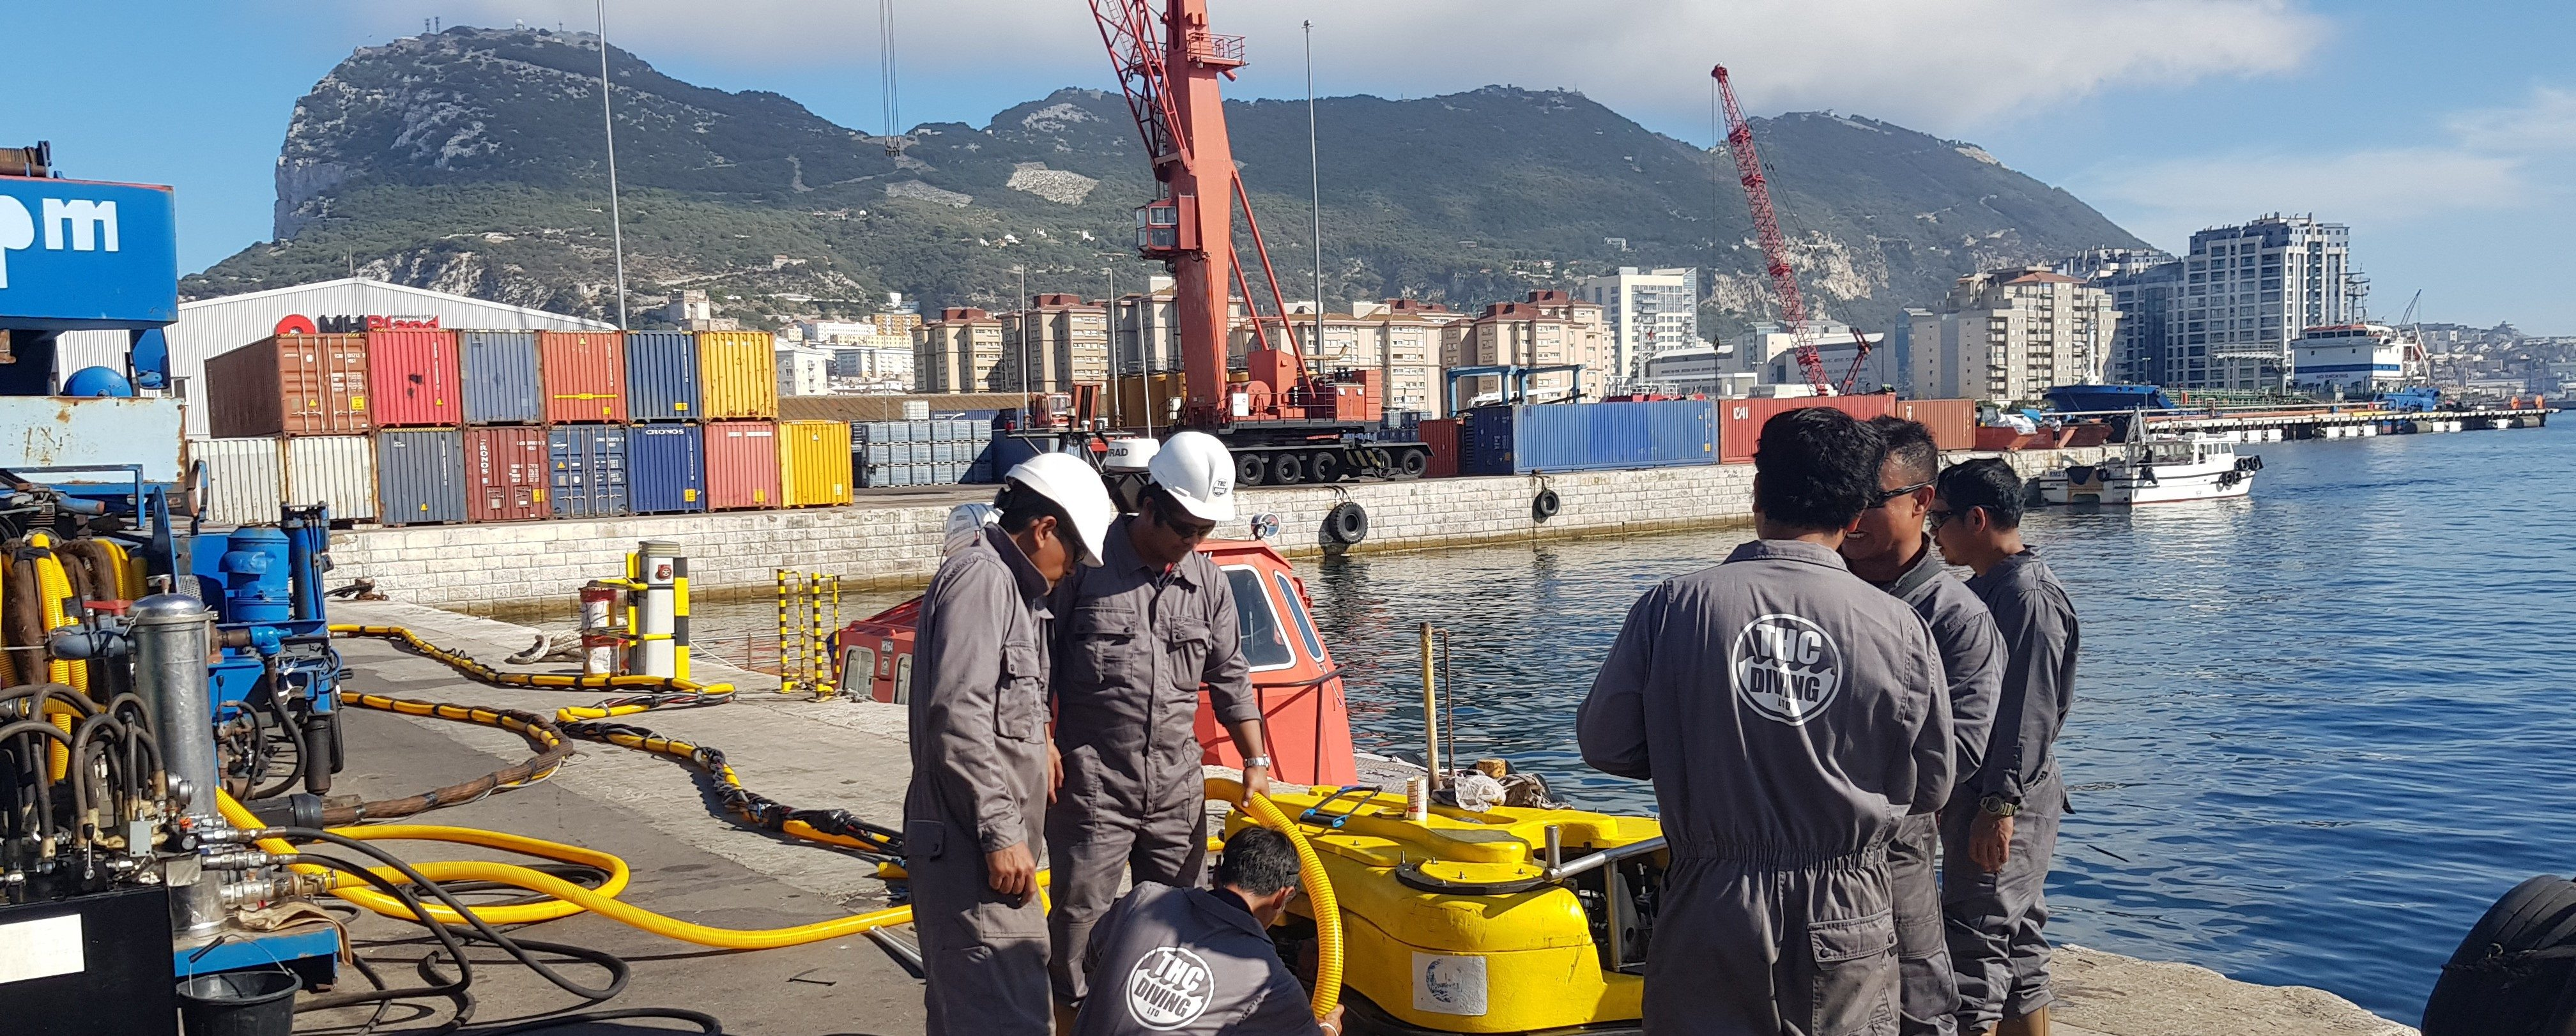 DIVE MARINE GROUP SERVICES ANNOUNCES EXPANSION TO GIBRALTAR